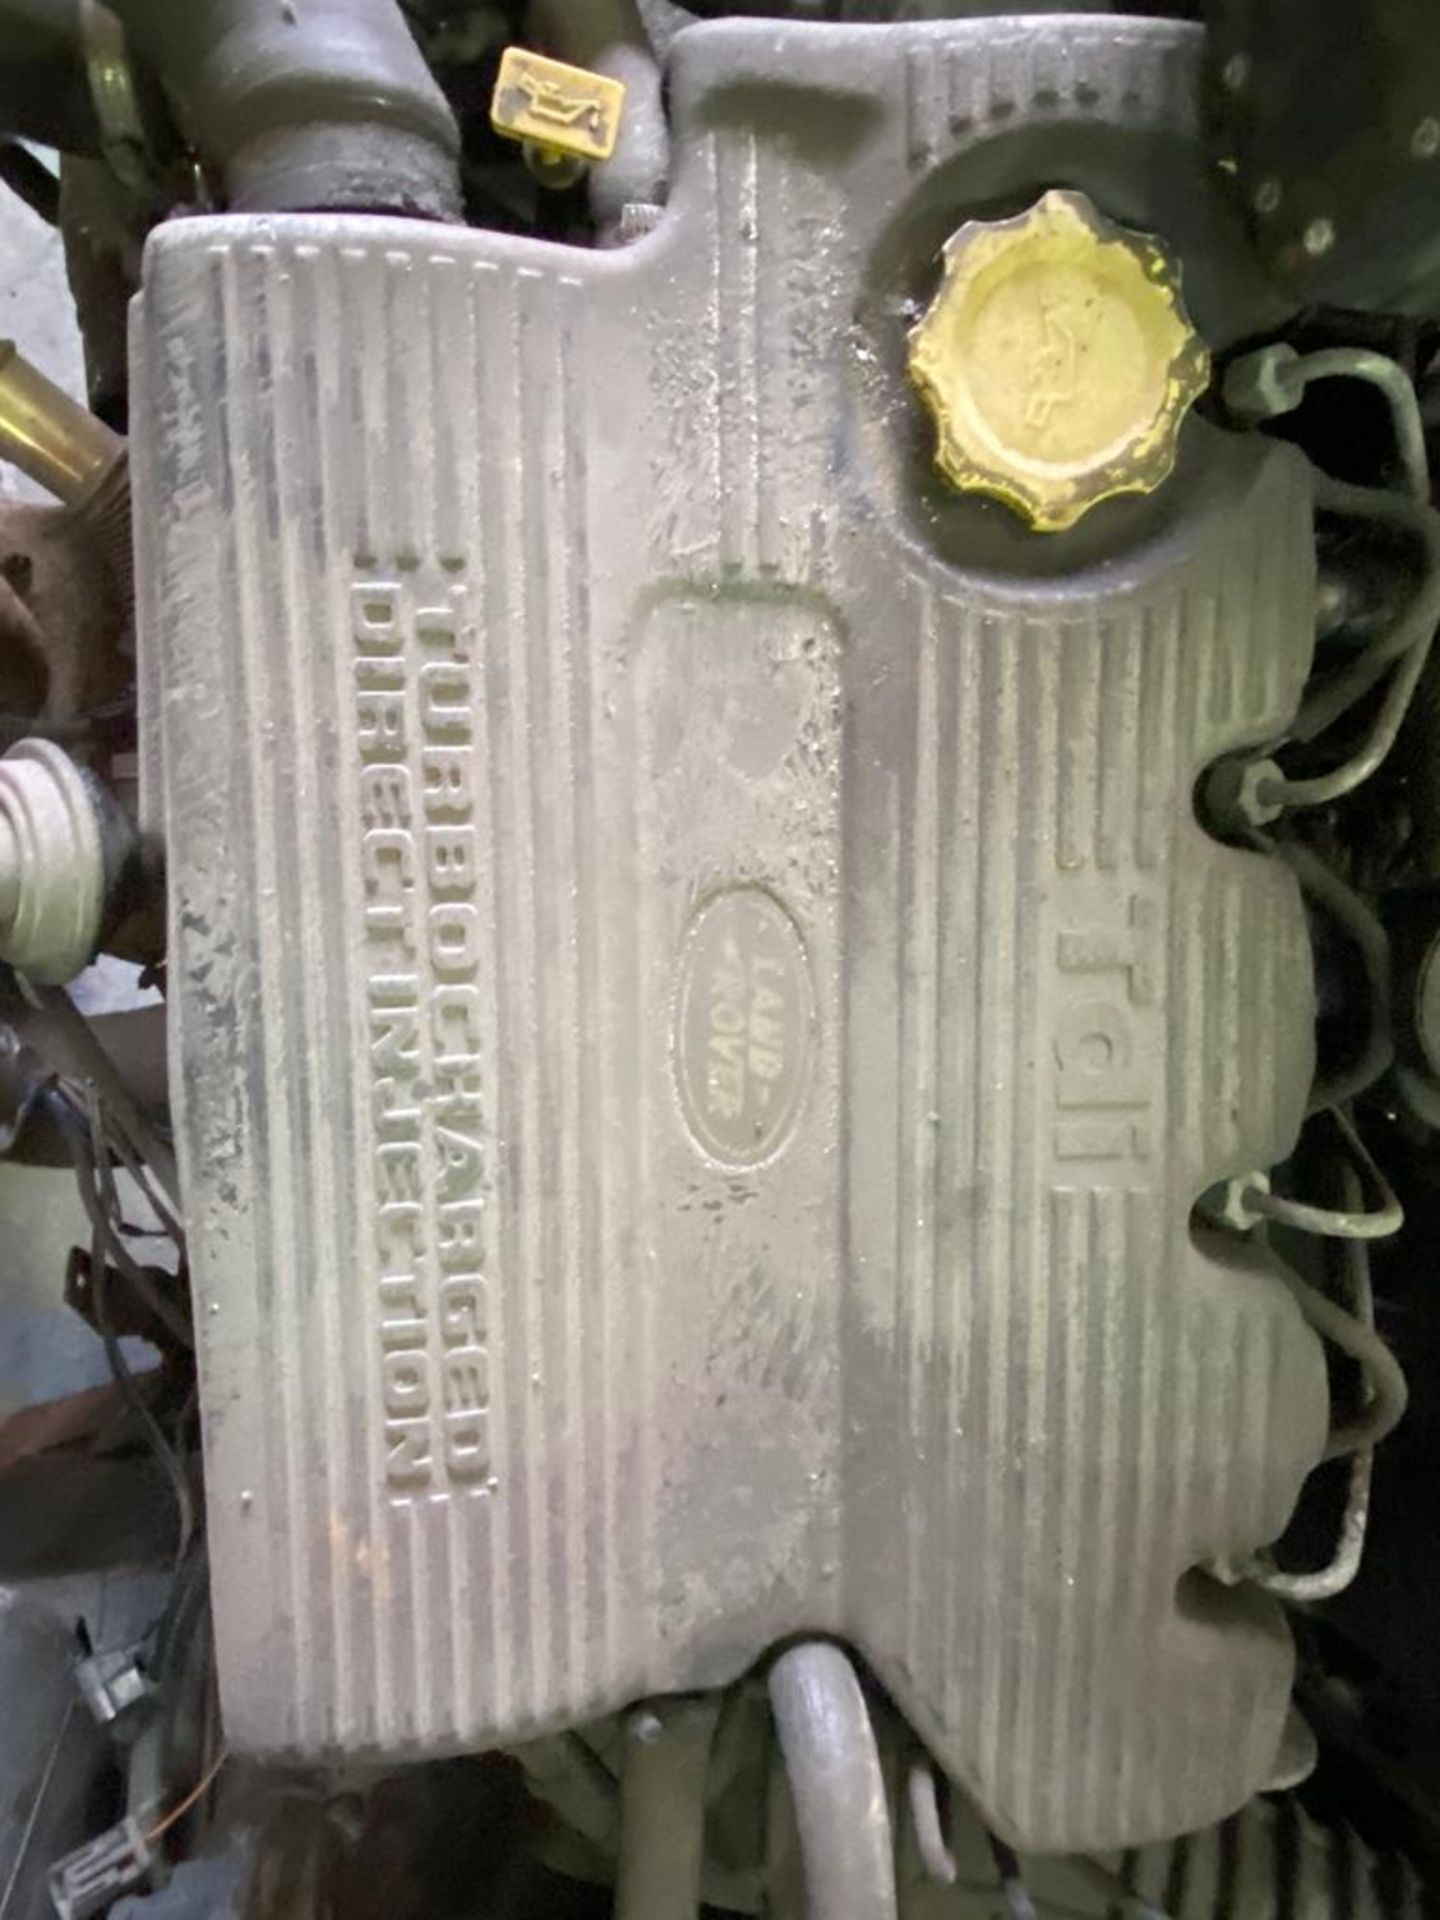 Land Rover 110 County, 300 TDI Engine Appears Mostly Complete - No Bumper, Bonnet, Glass etc As - Image 20 of 26